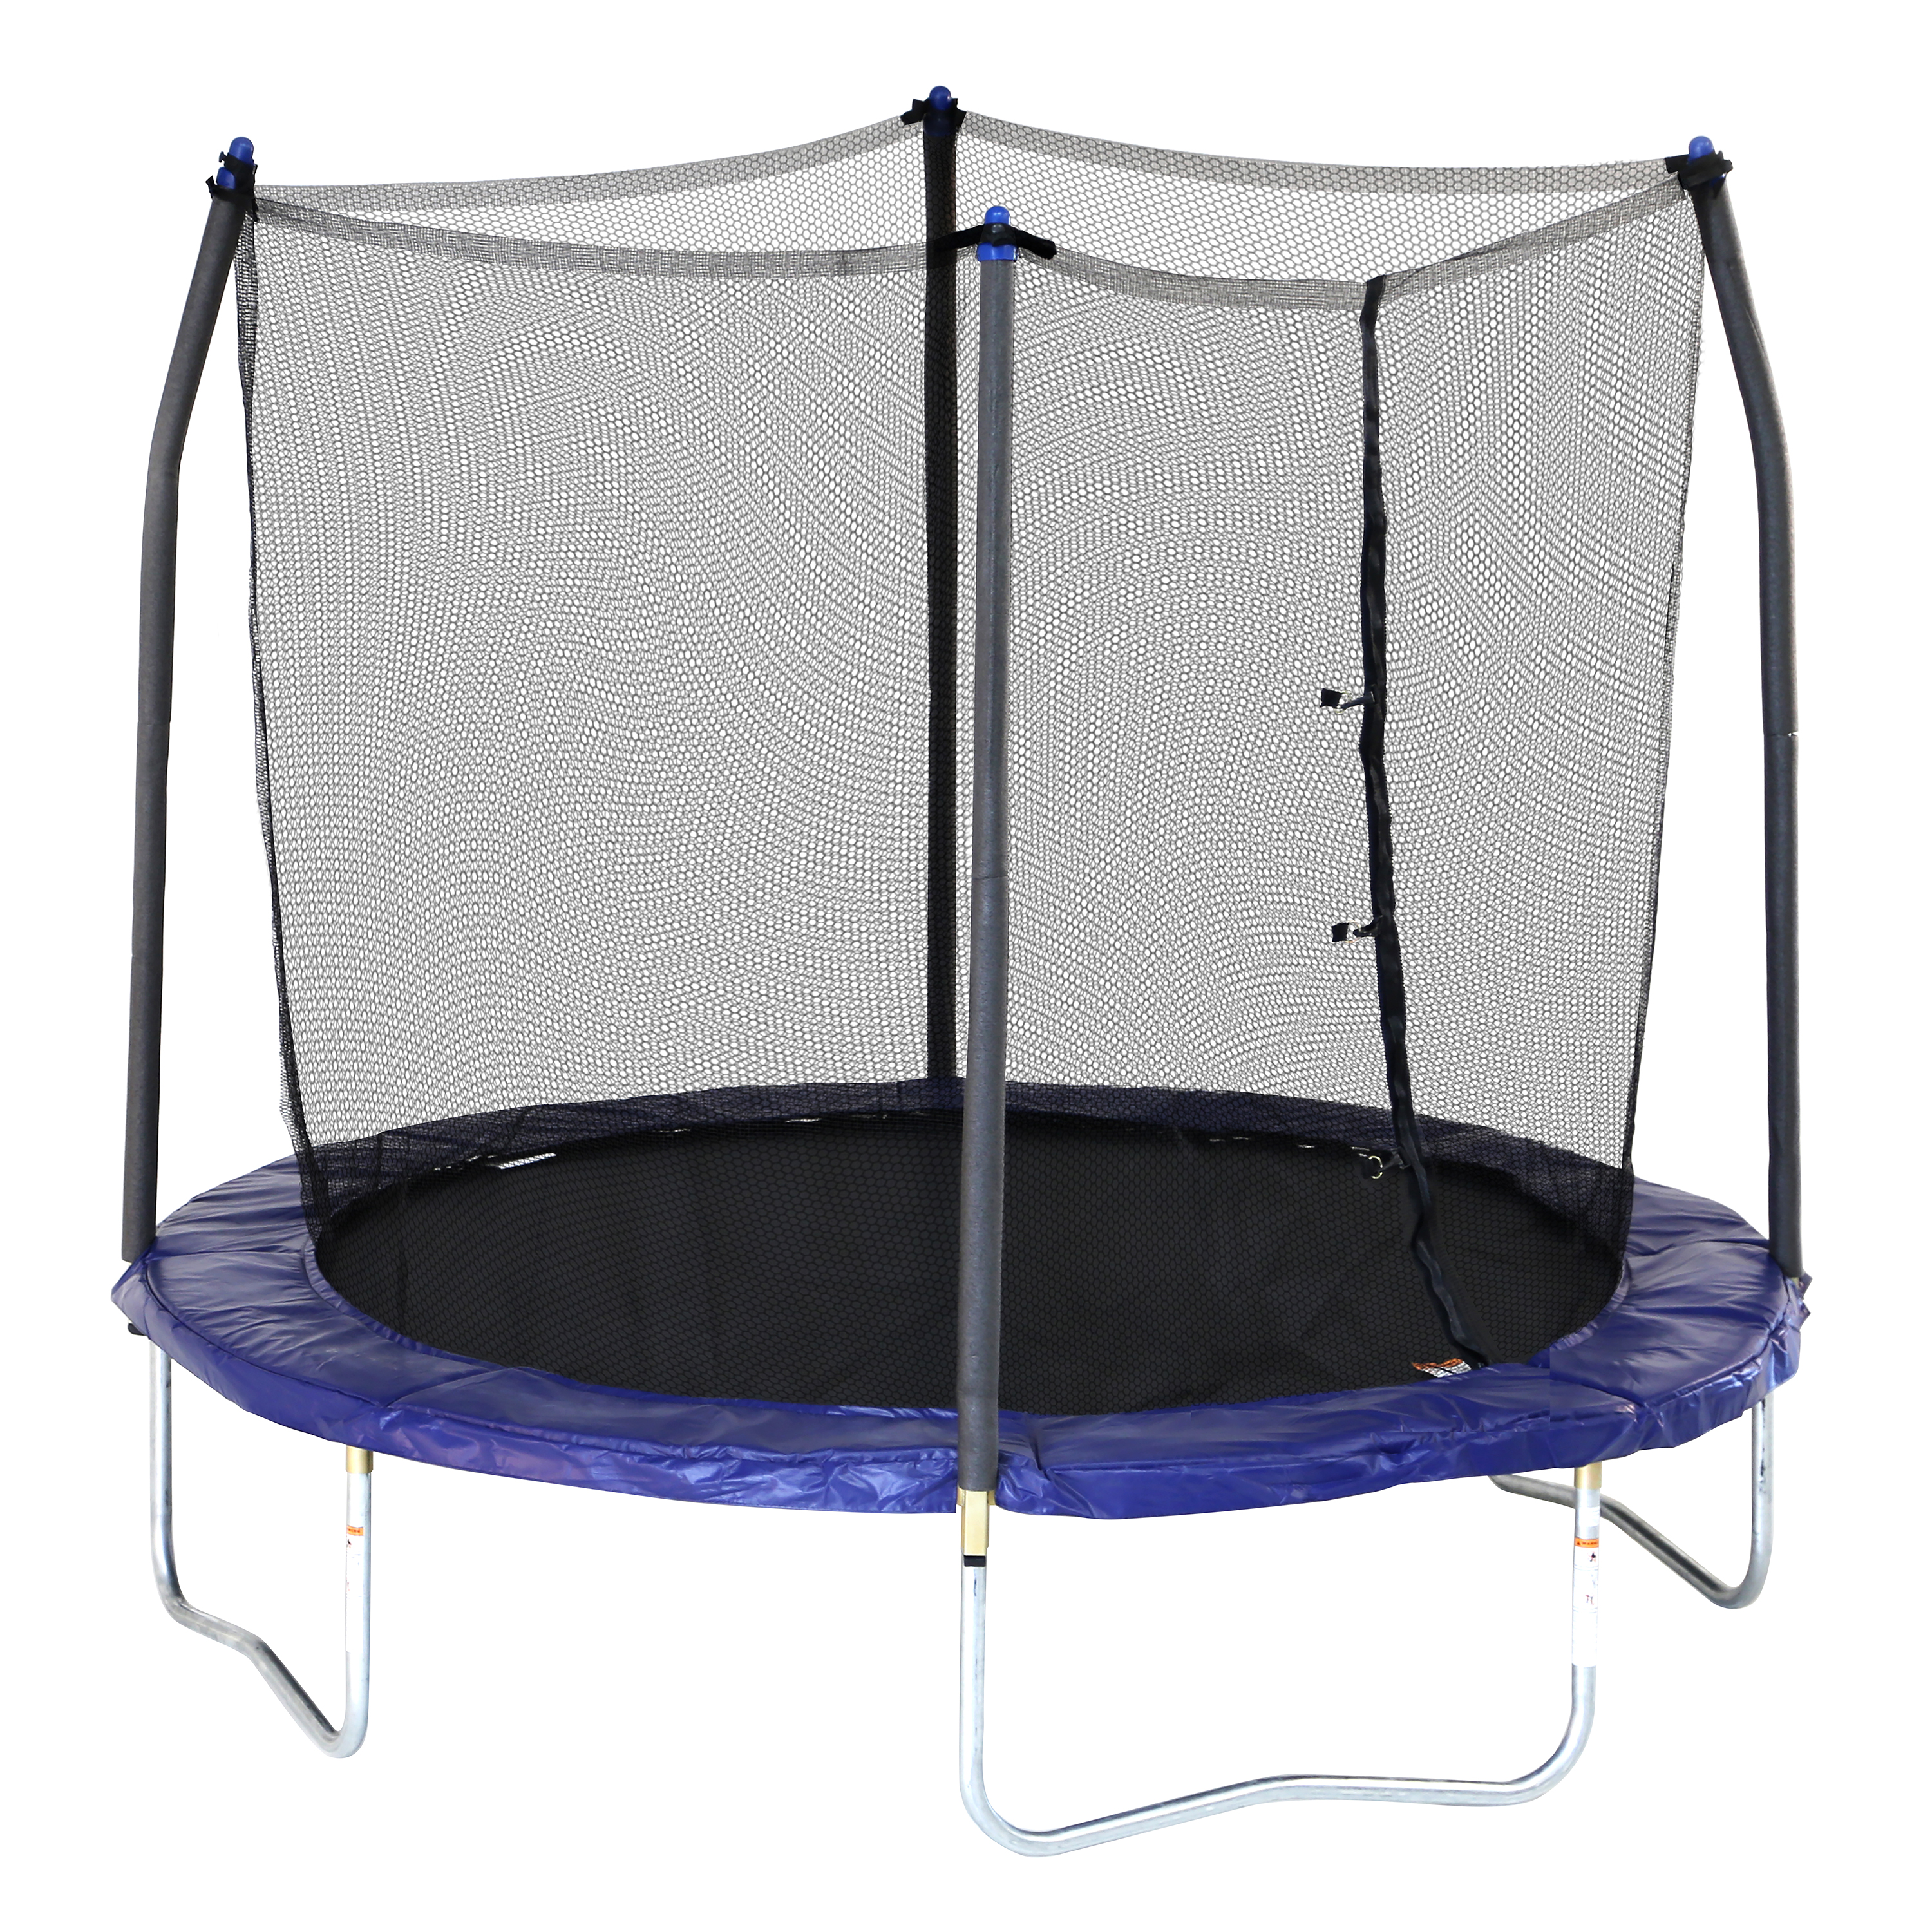 Skywalker Trampolines 8' Round Trampoline with Enclosure - Blue